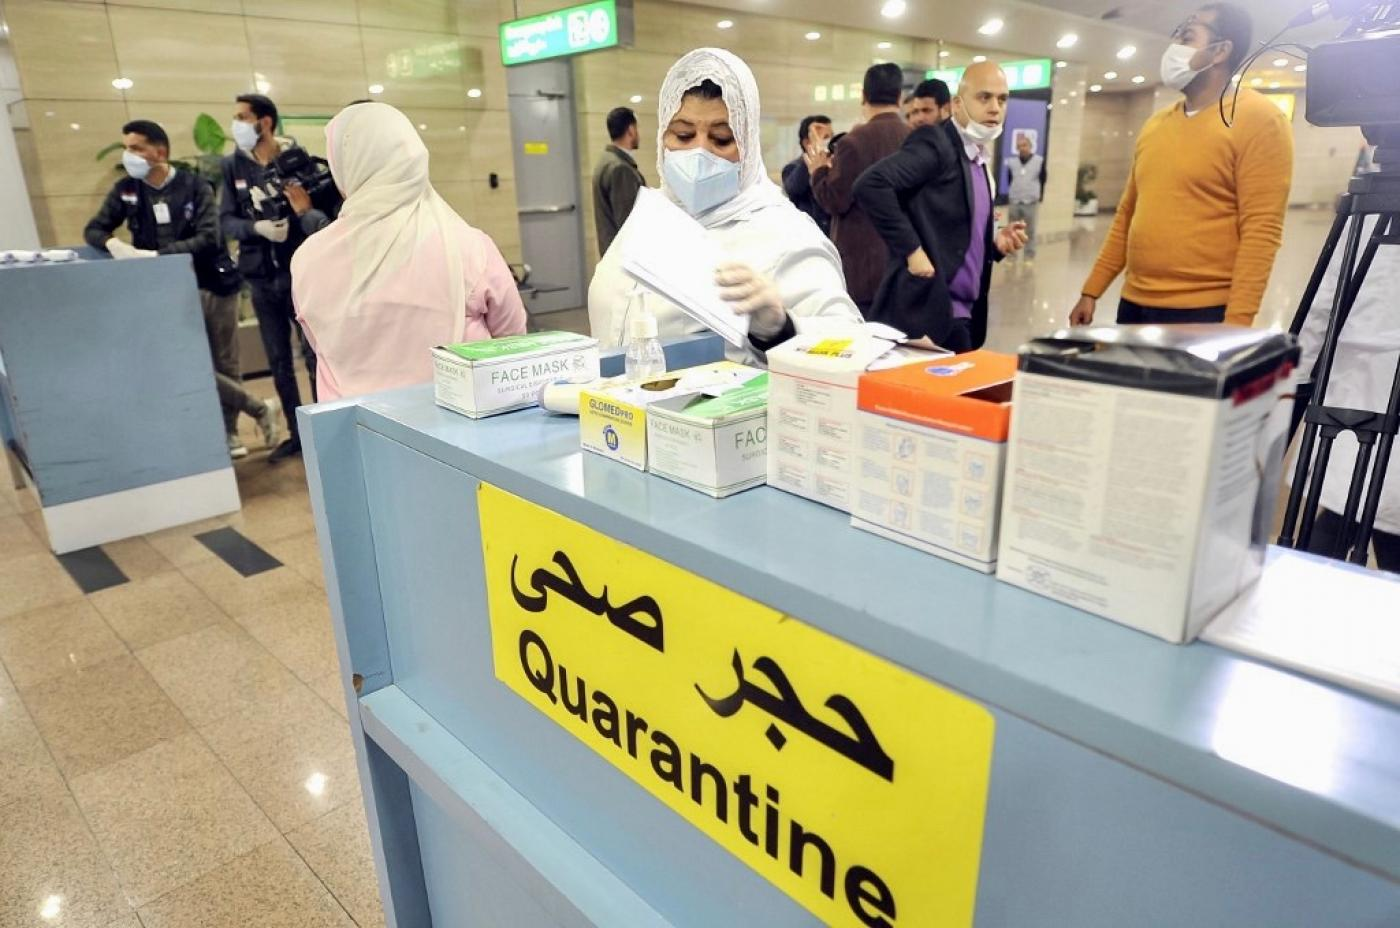 Qatar bans visitors from Egypt on coronavirus fears | Middle East Eye